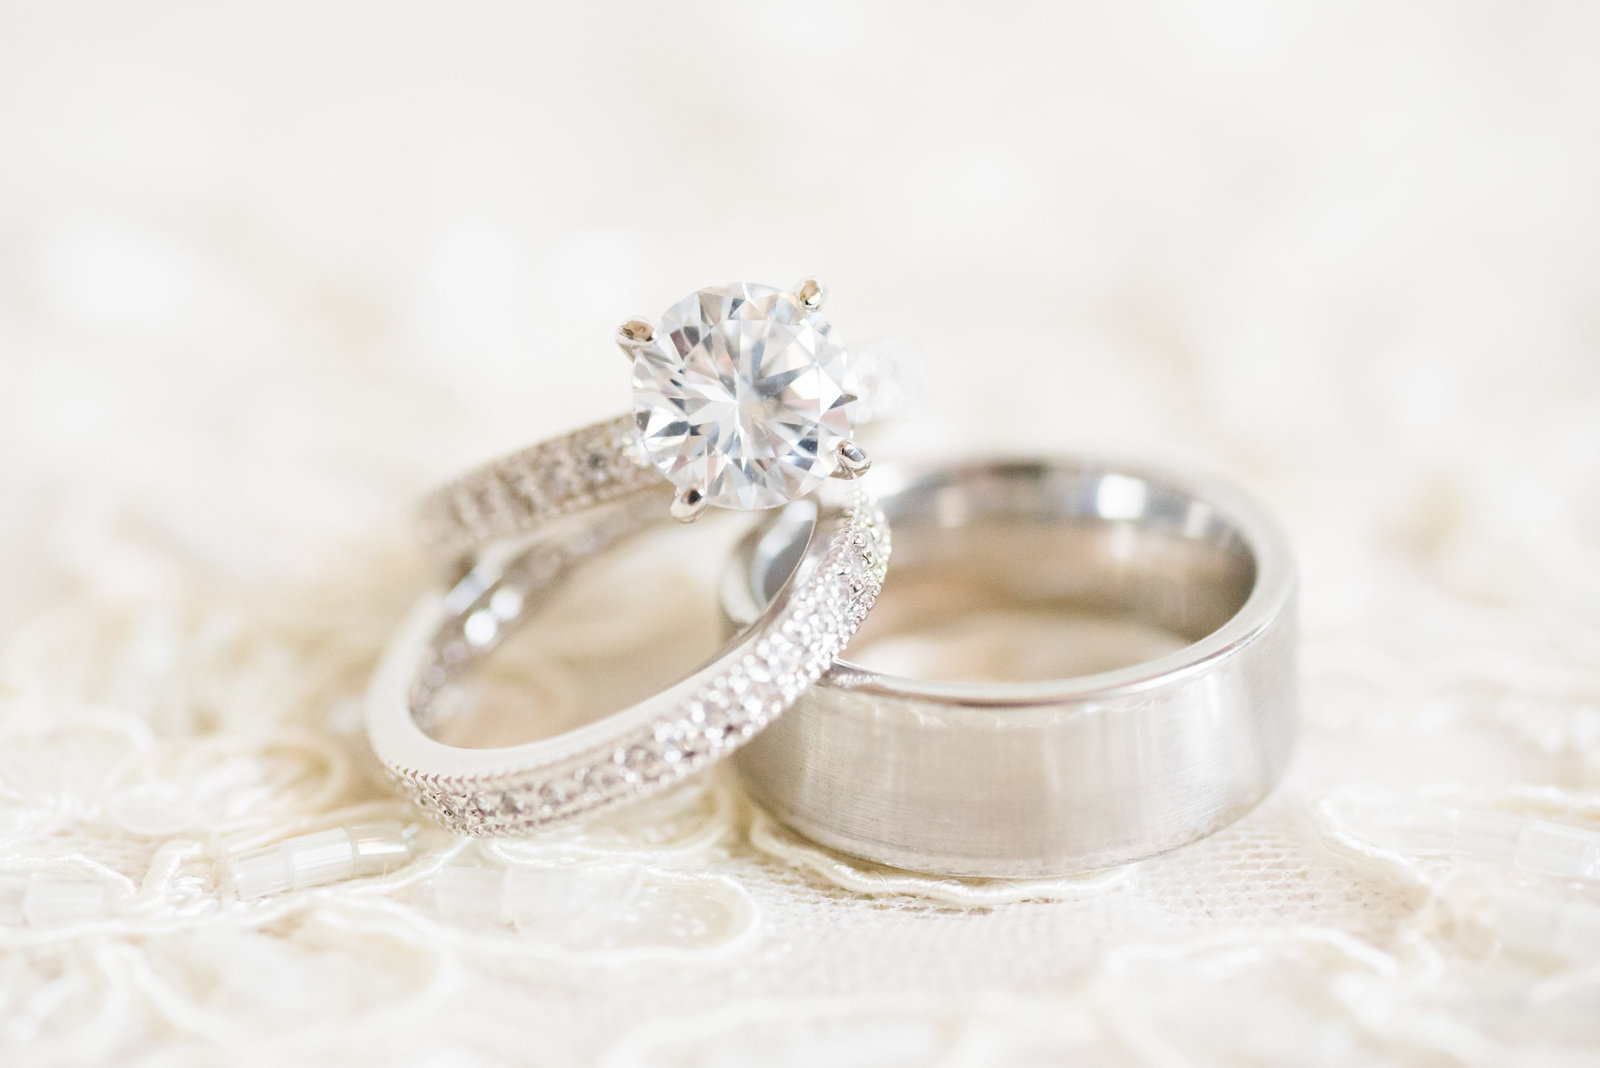 Engagement and wedding rings on lace wedding dress photo